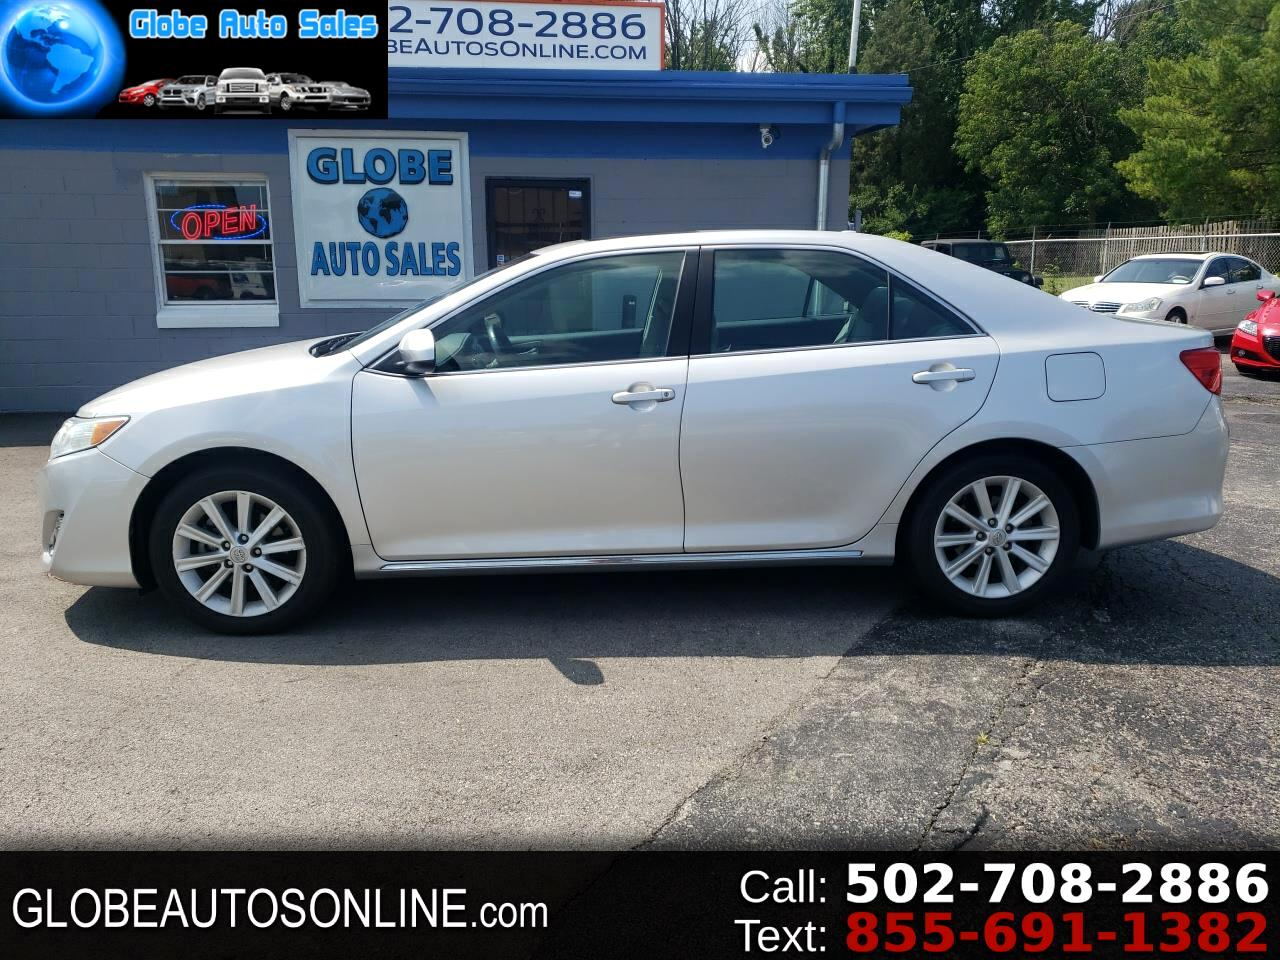 Toyota Camry 2014.5 4dr Sdn I4 Auto XLE (Natl) 2014